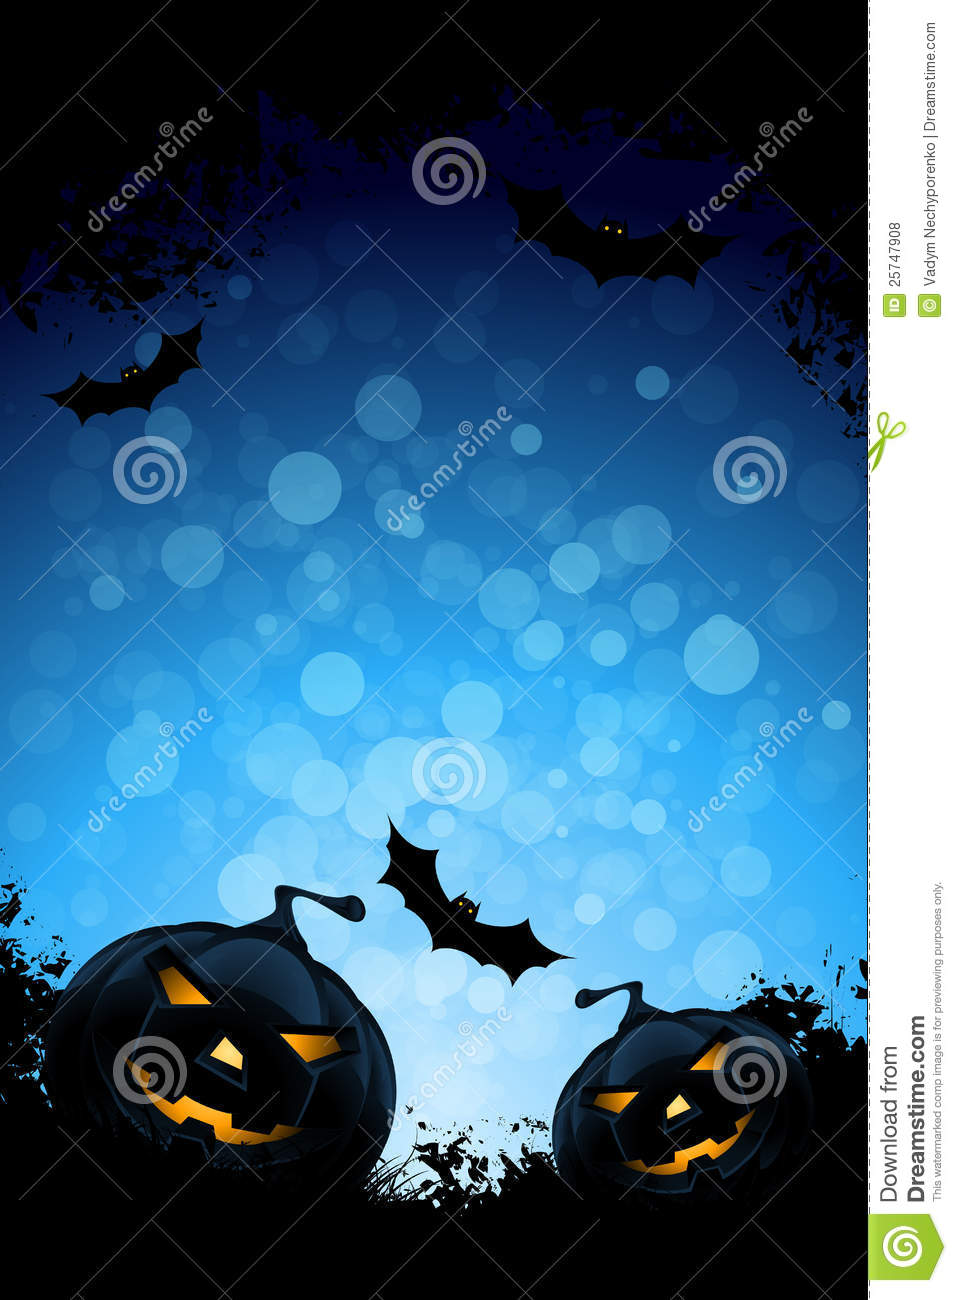 Grunge Background For Halloween Party Royalty Free Stock